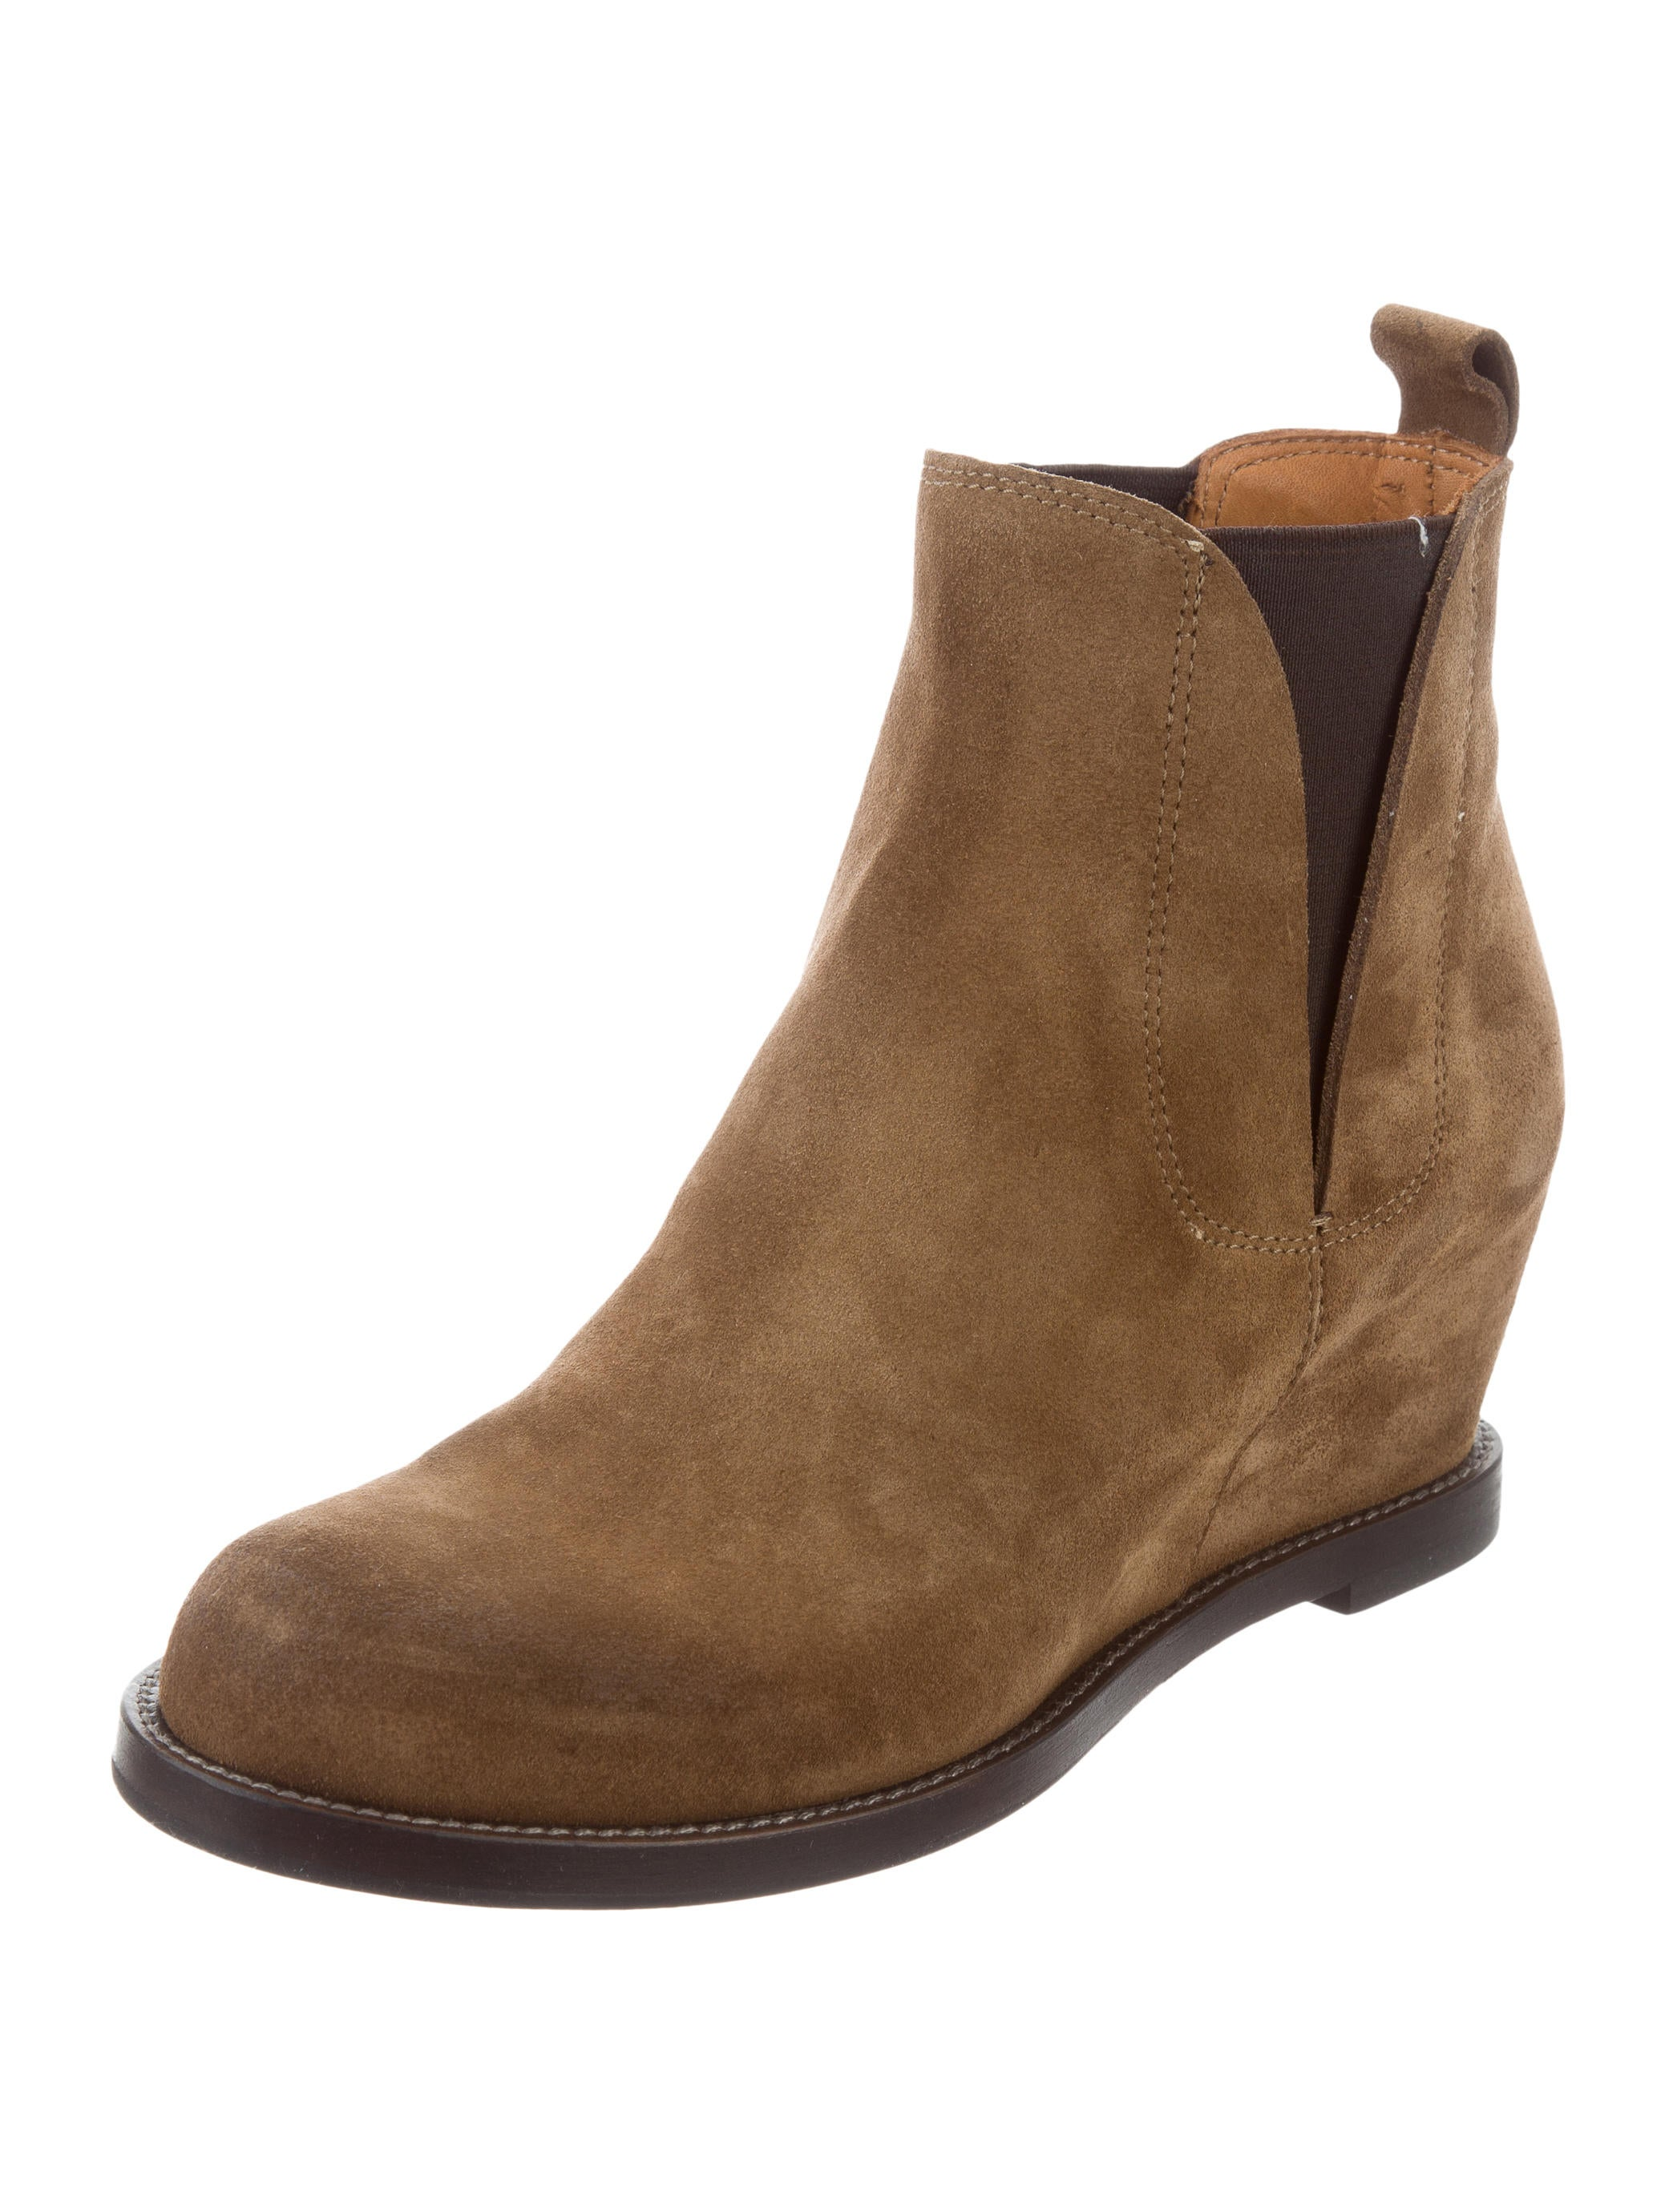 Buttero Suede Round-Toe Booties w/ Tags with paypal cheap online discount pick a best outlet comfortable 9rSn8